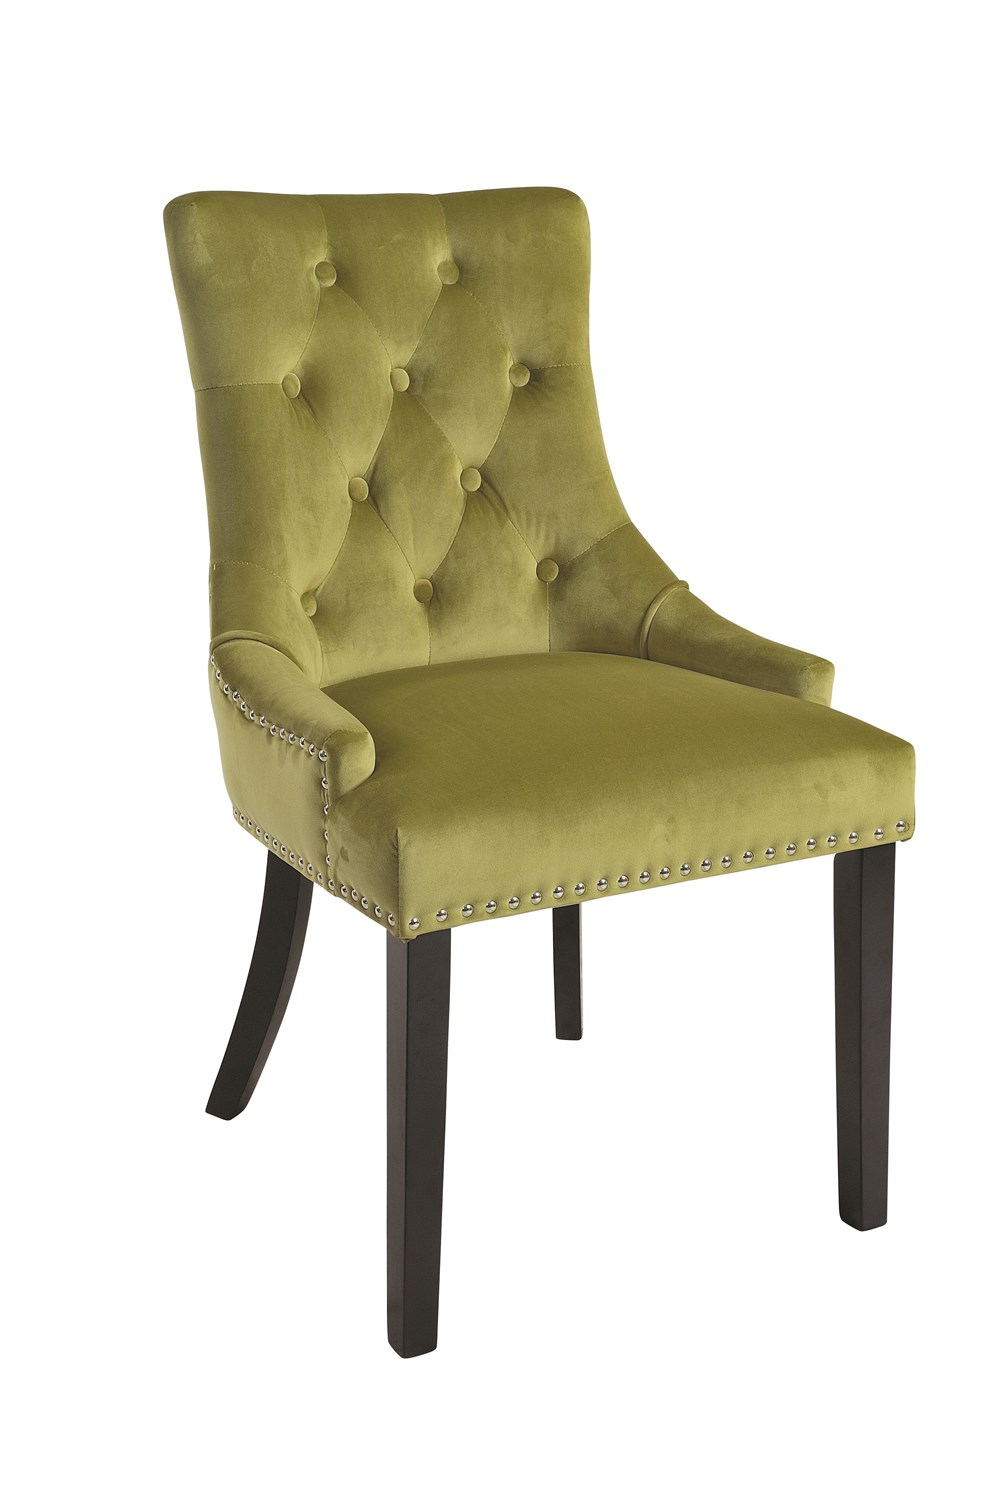 VICKY CHAIR Golden Lime Upholstered Chair with Black Legs